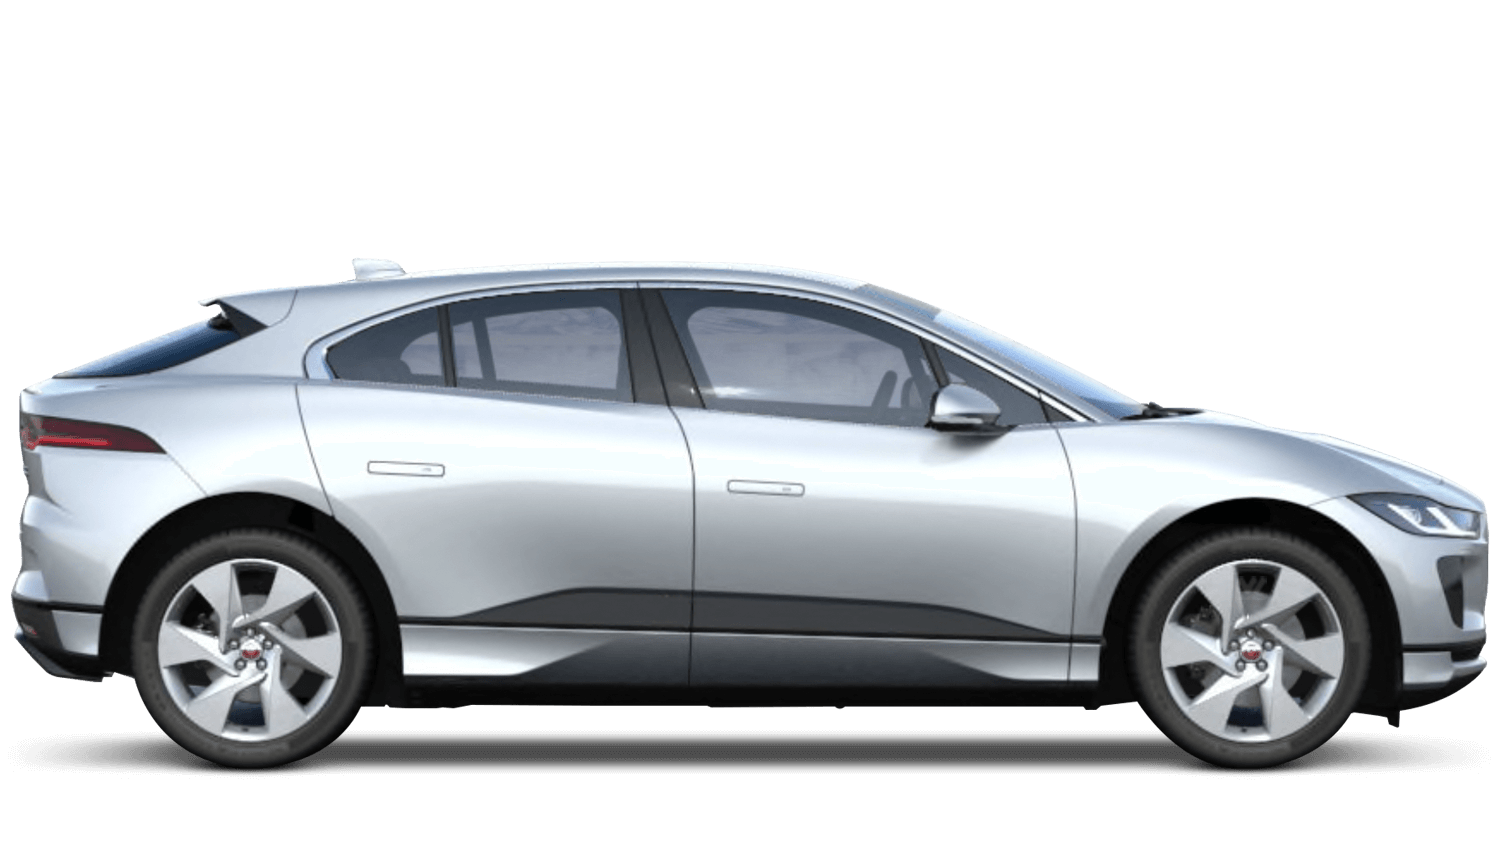 Jaguar All Electric I-PACE Business Offers